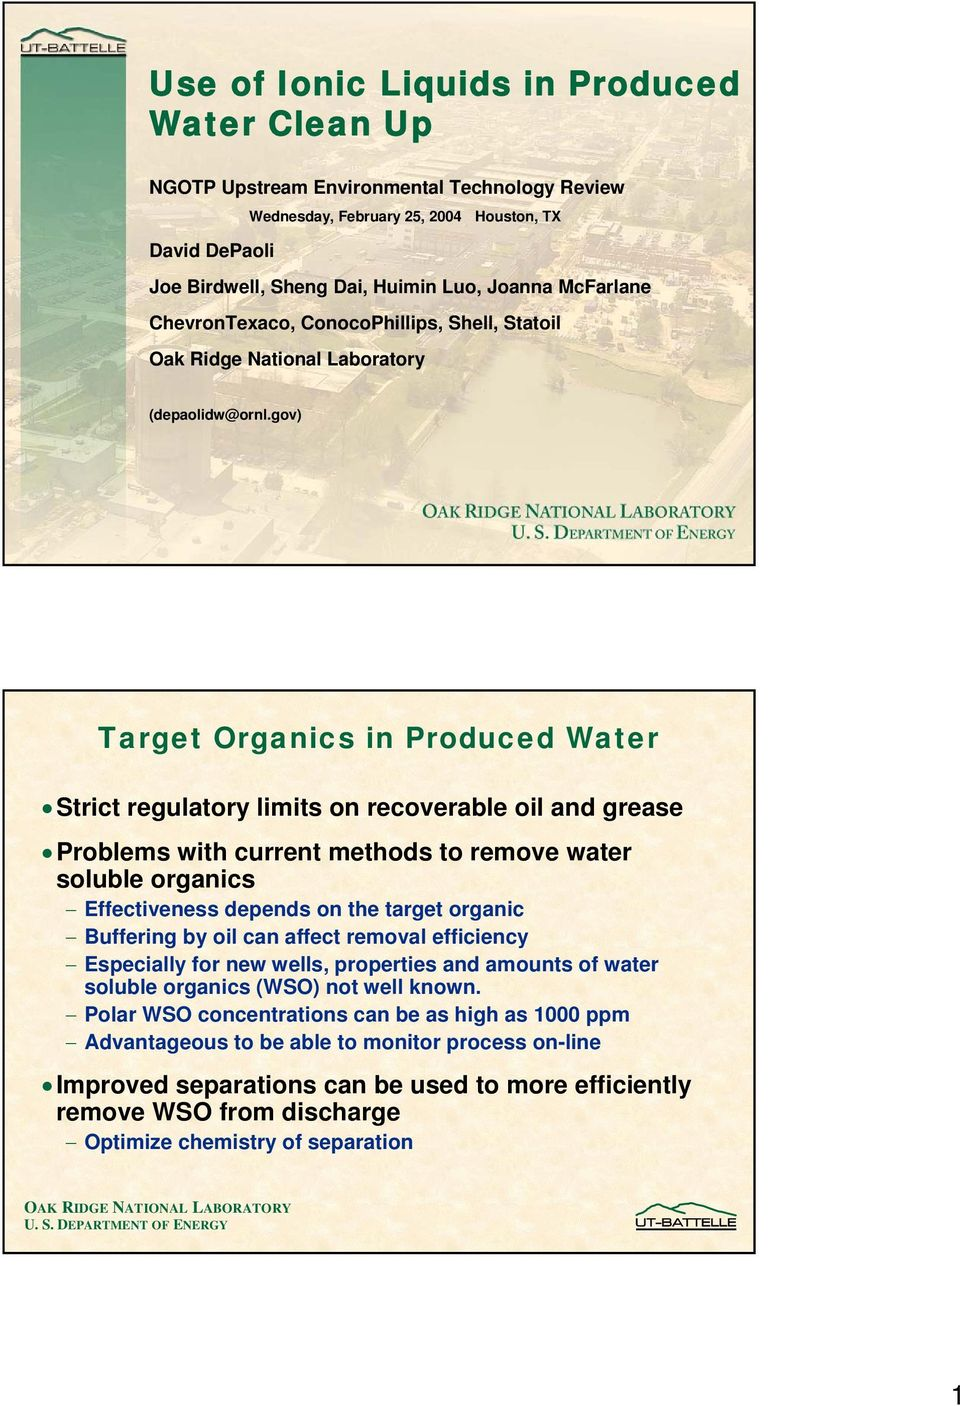 gov) Target Organics in Produced Water Strict regulatory limits on recoverable oil and grease Problems with current methods to remove water soluble organics Effectiveness depends on the target